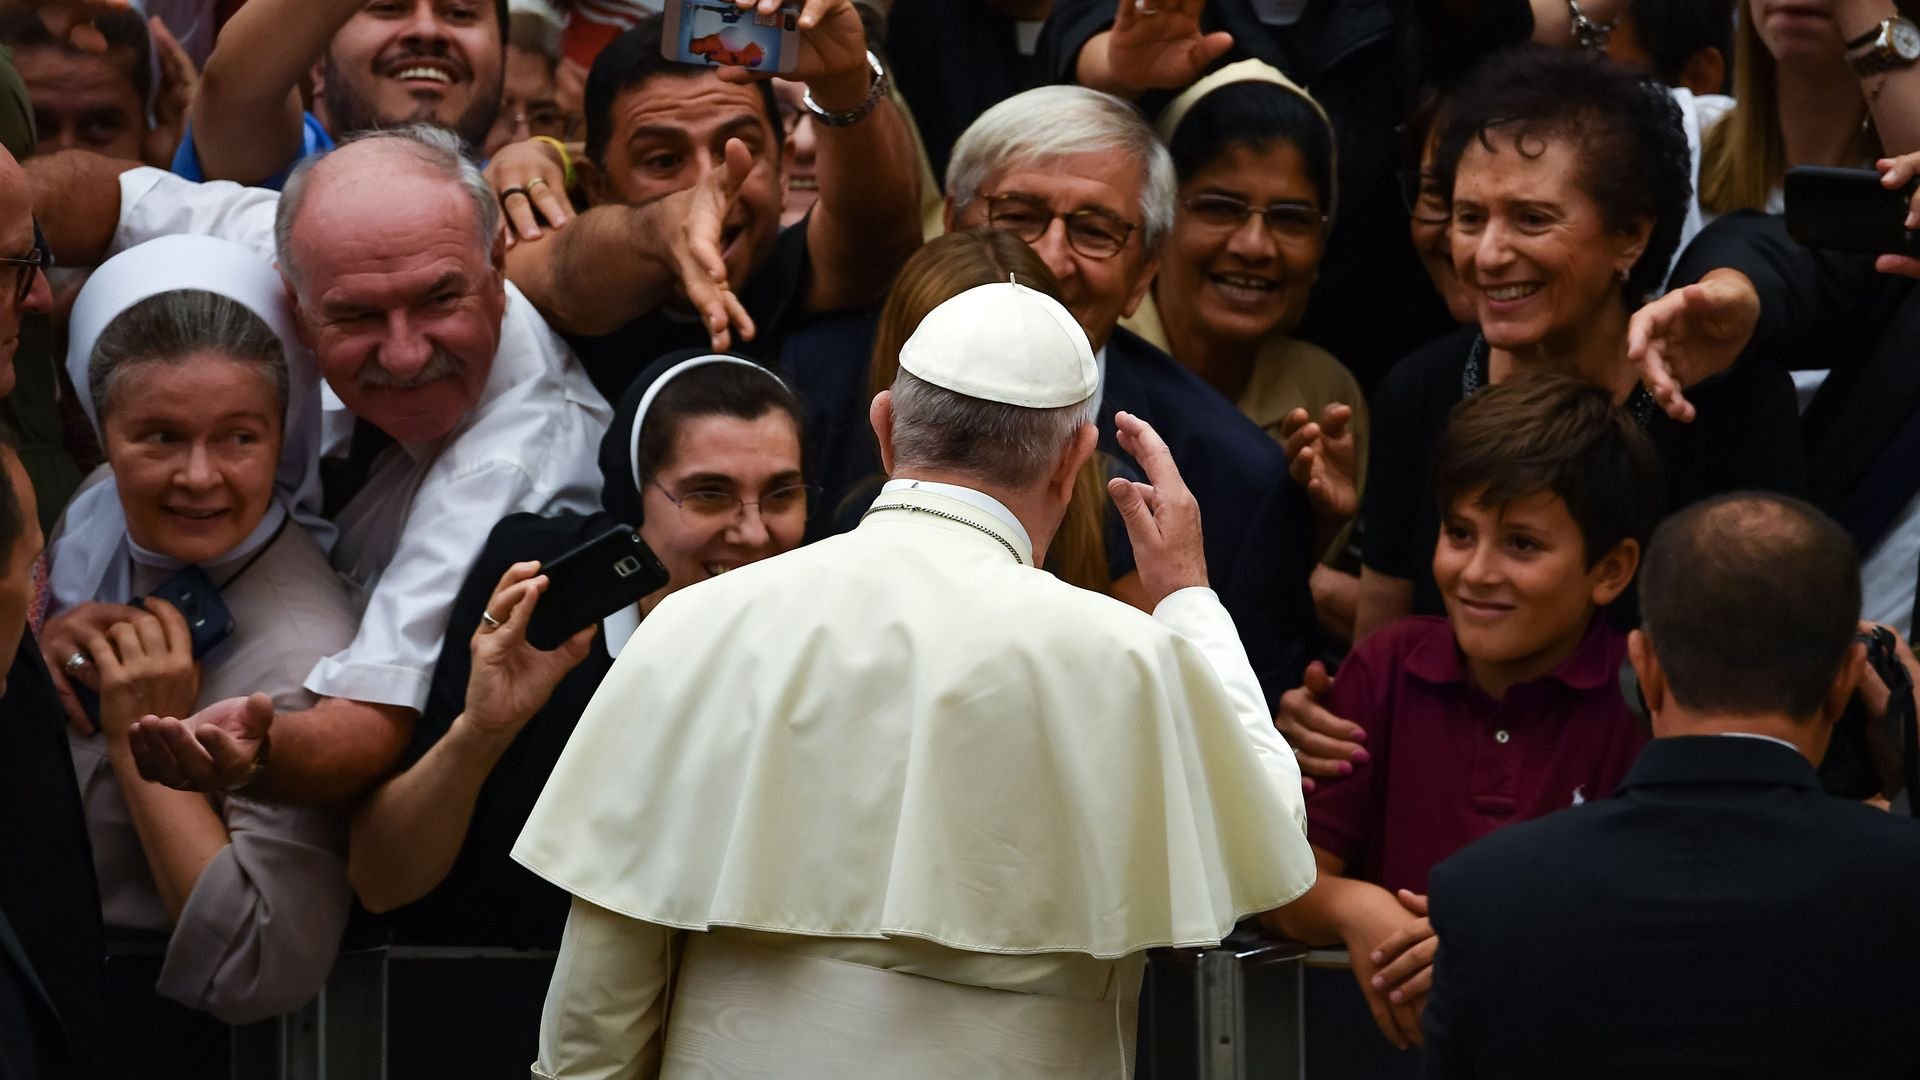 Pope Francis standing in front of a crowd.